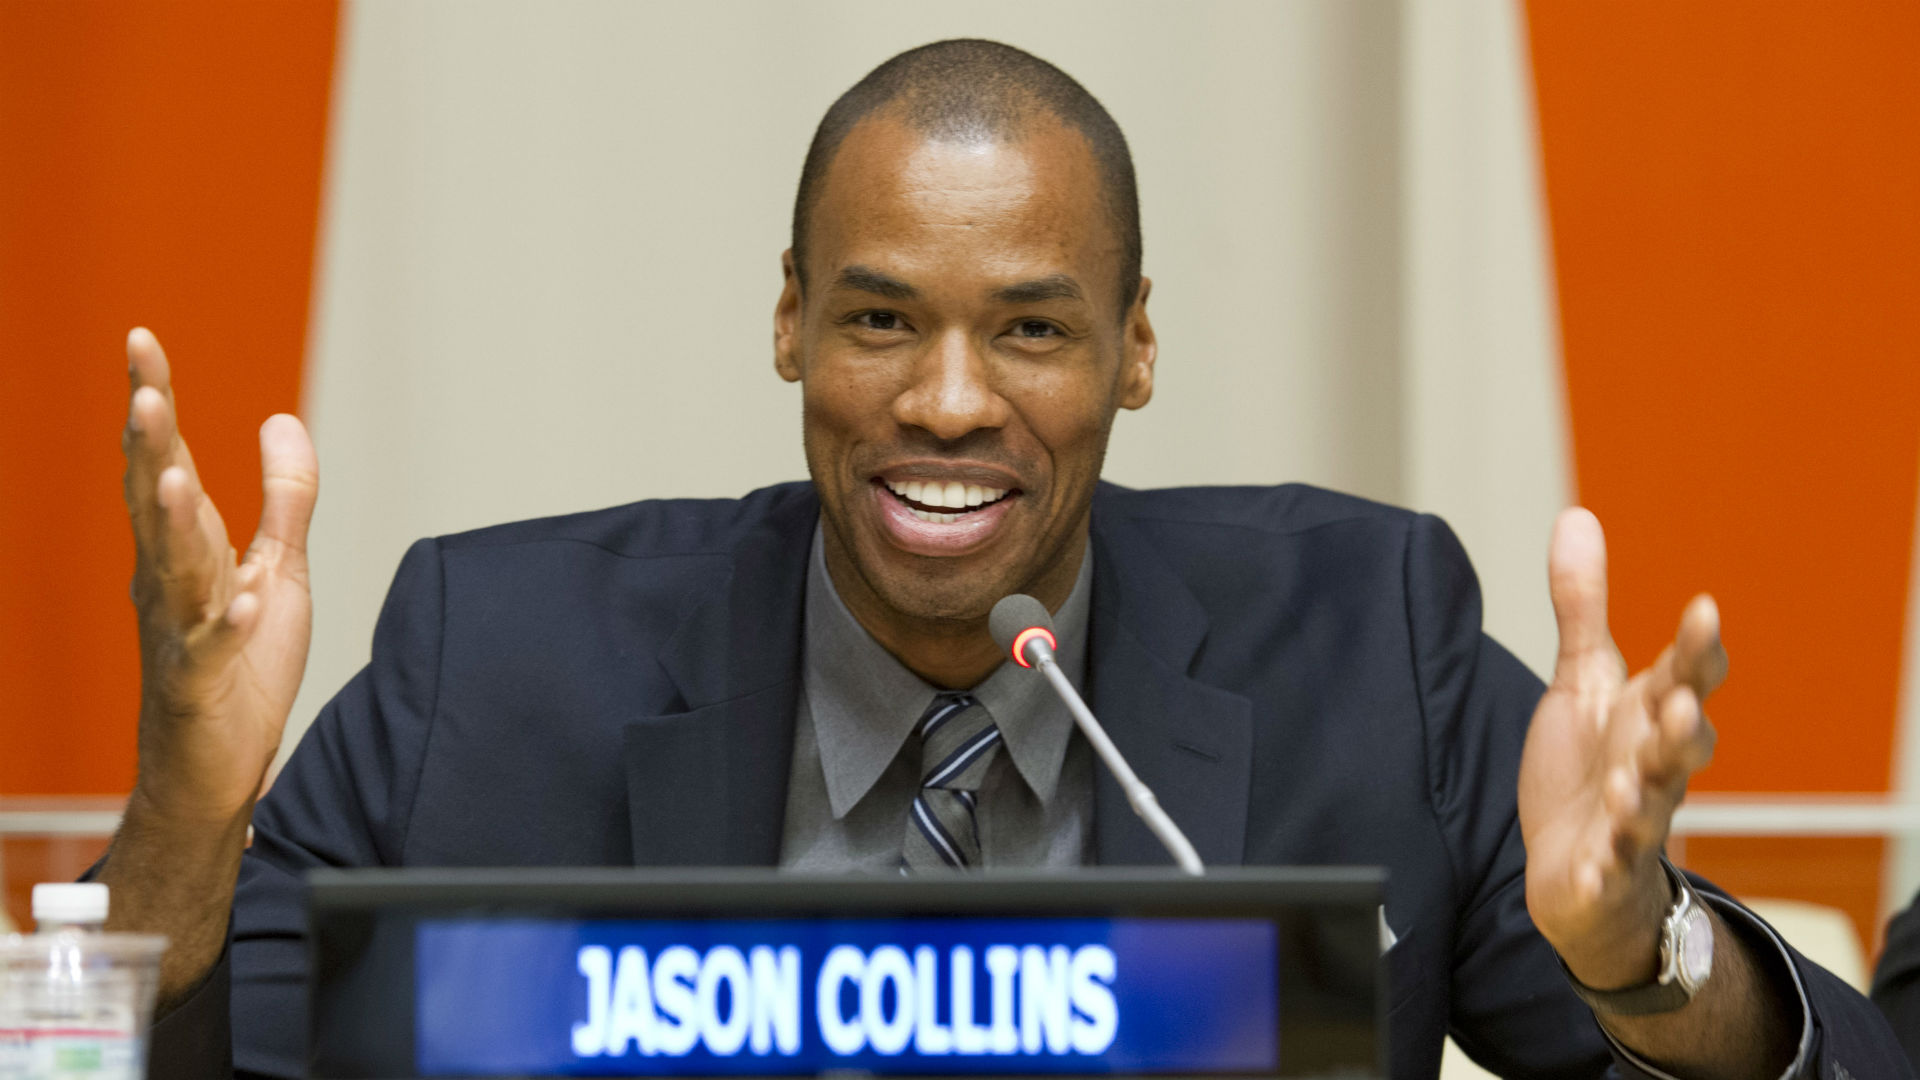 collins-jason1211-ap-ftr.jpg